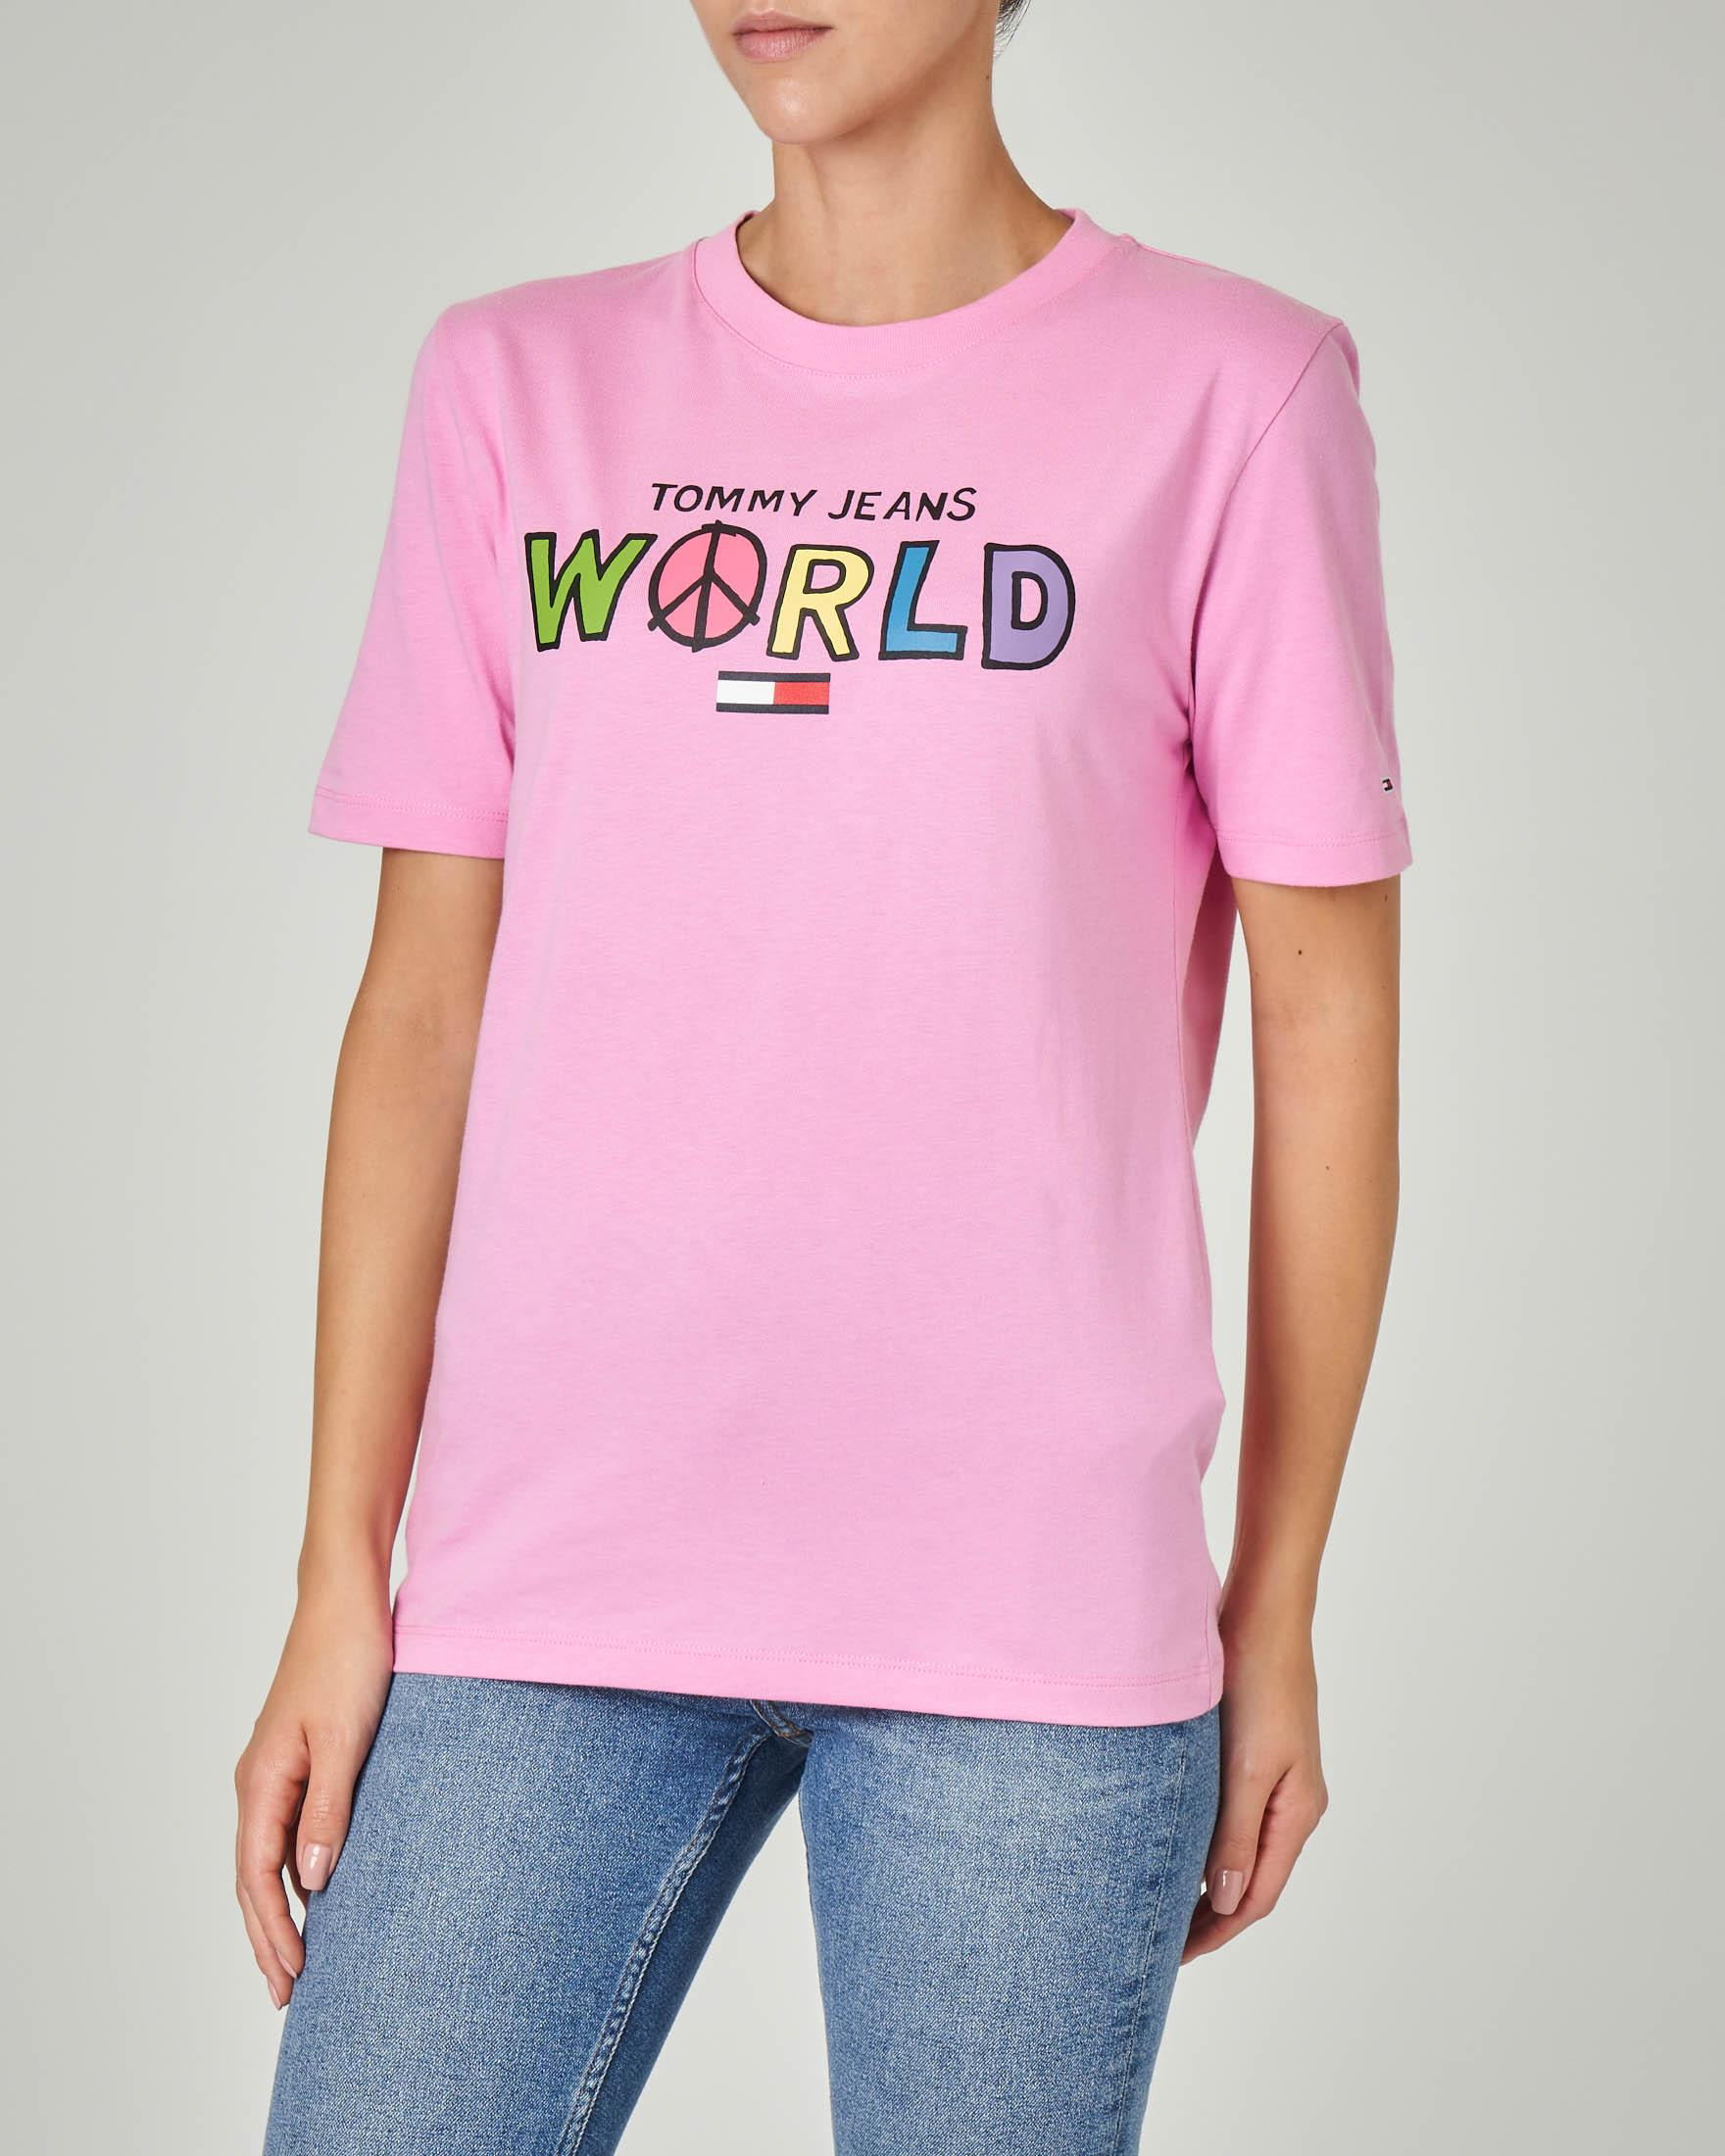 T-shirt rosa in cotone organico con stampa Tommy Jeans World